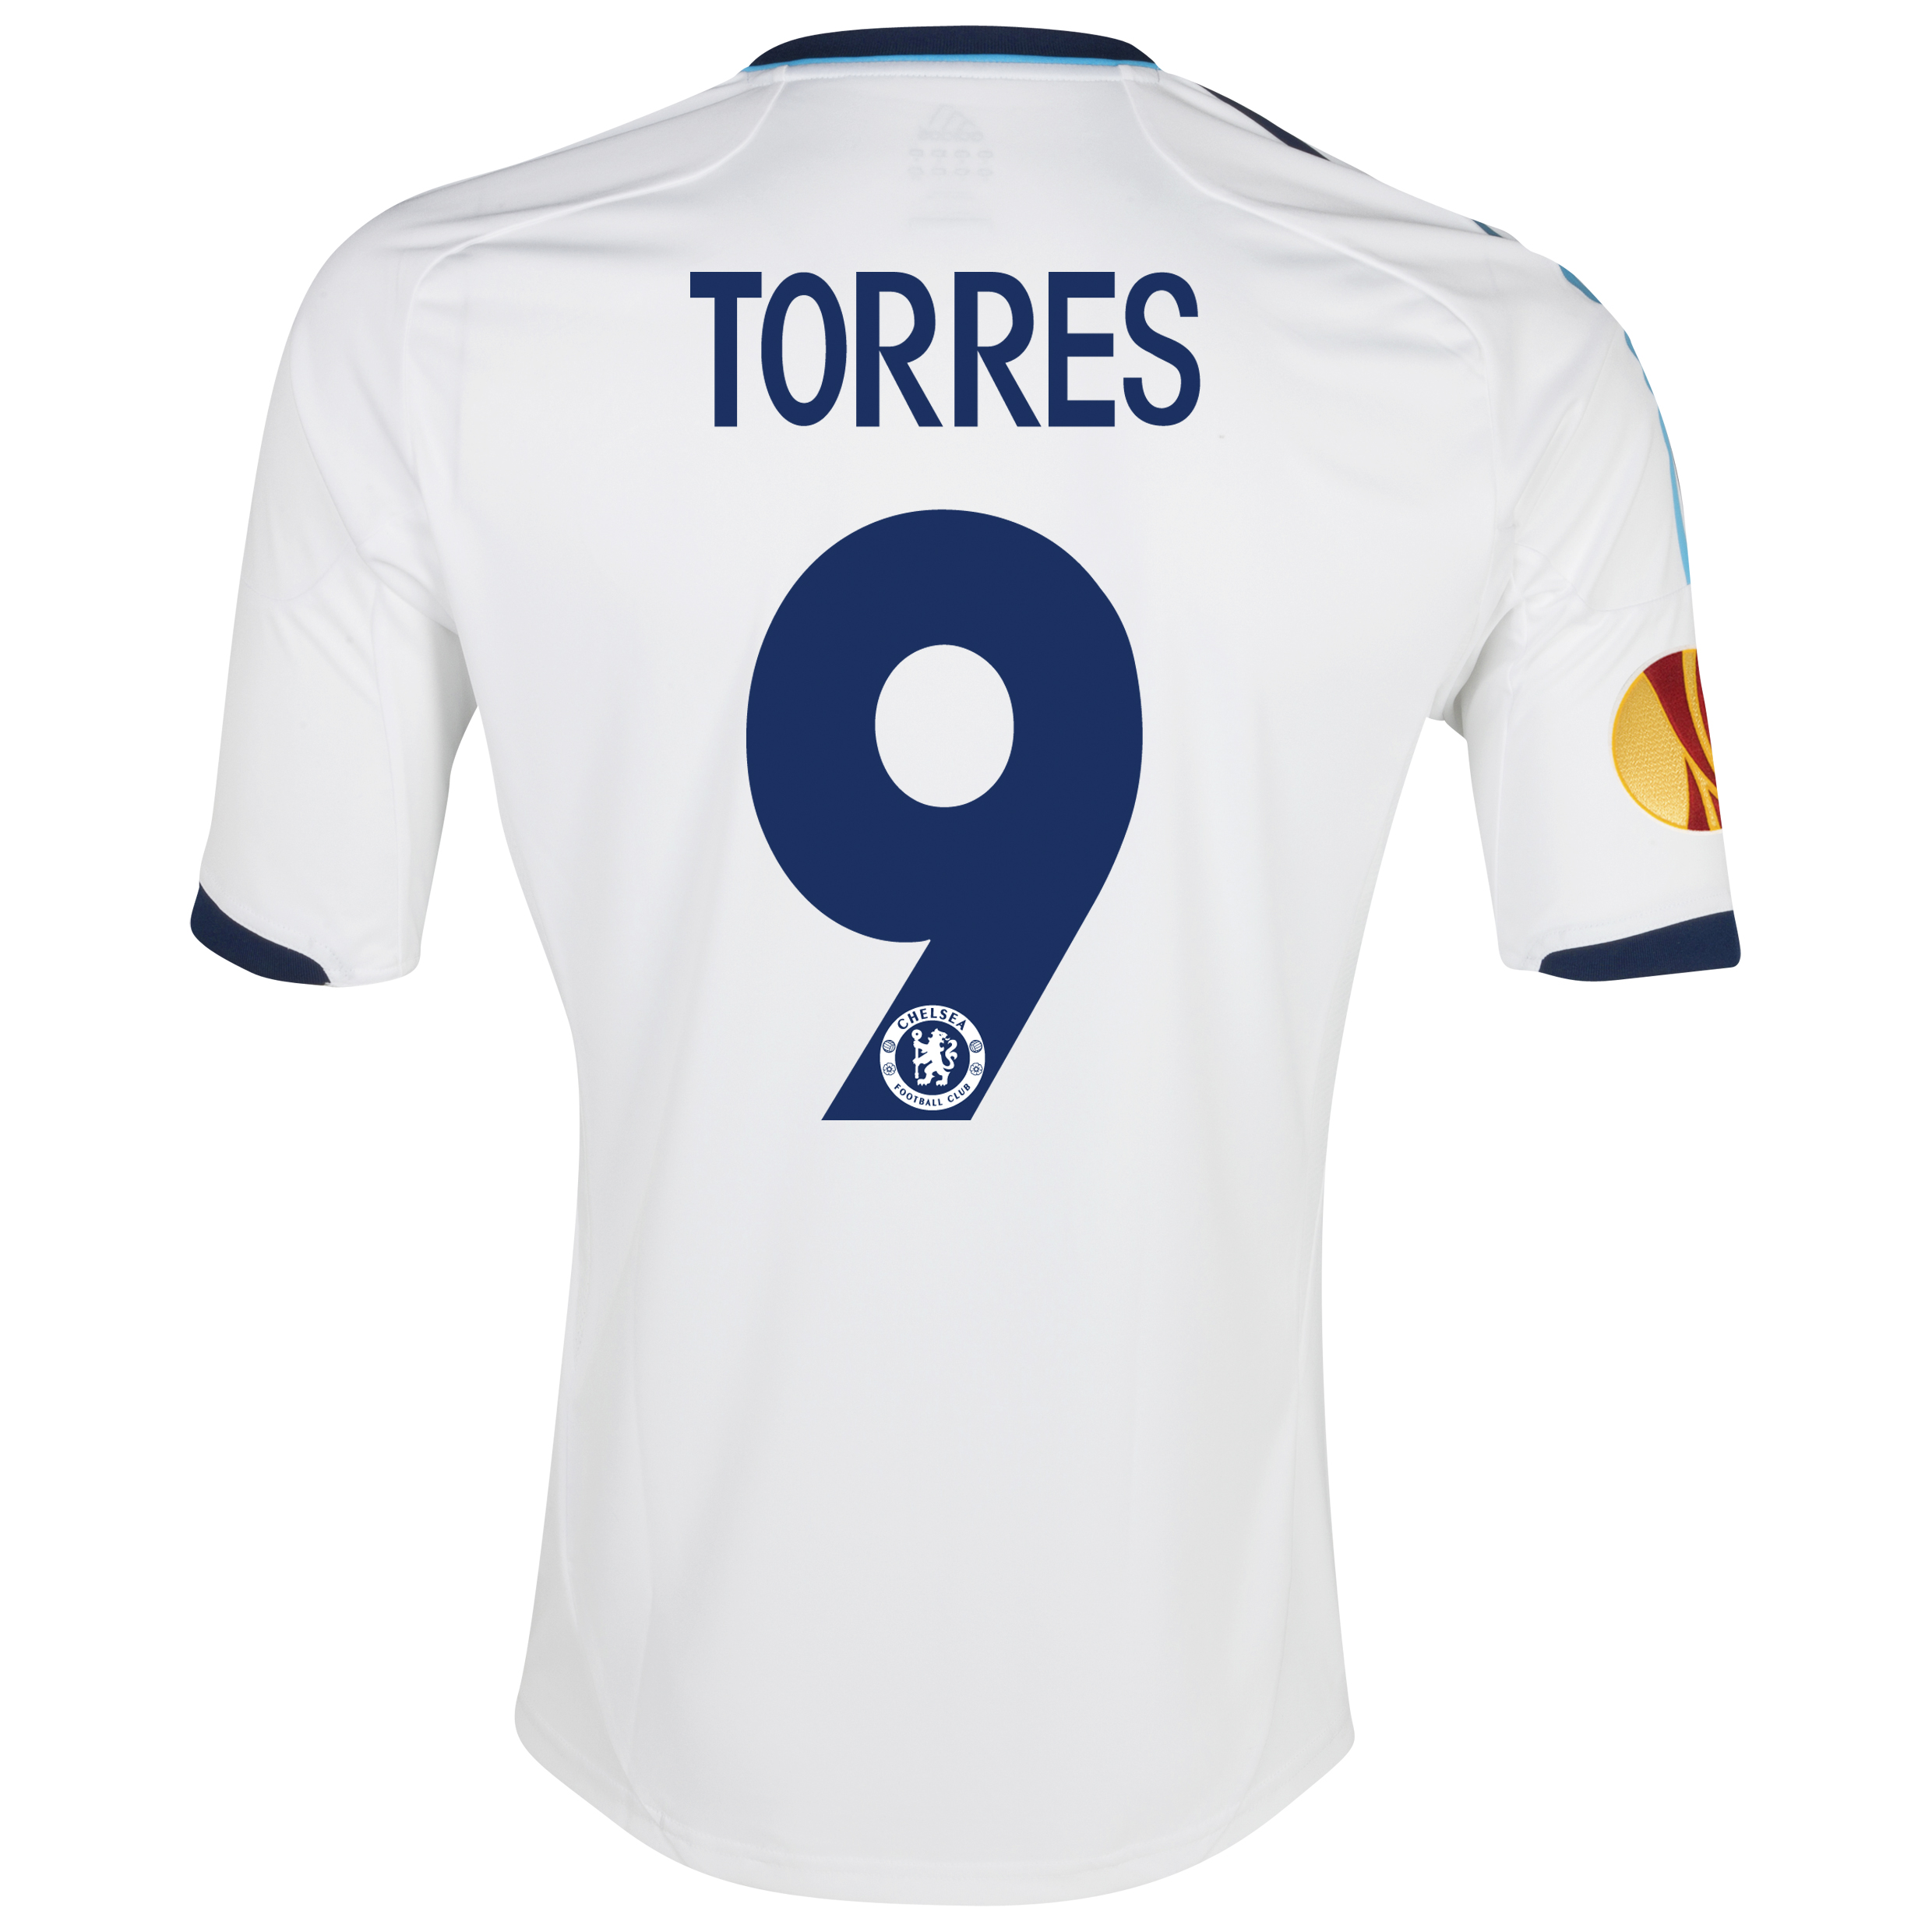 Chelsea UEFA Europa League Away Shirt 2012/13 with Torres 9 printing Including Europa Badge